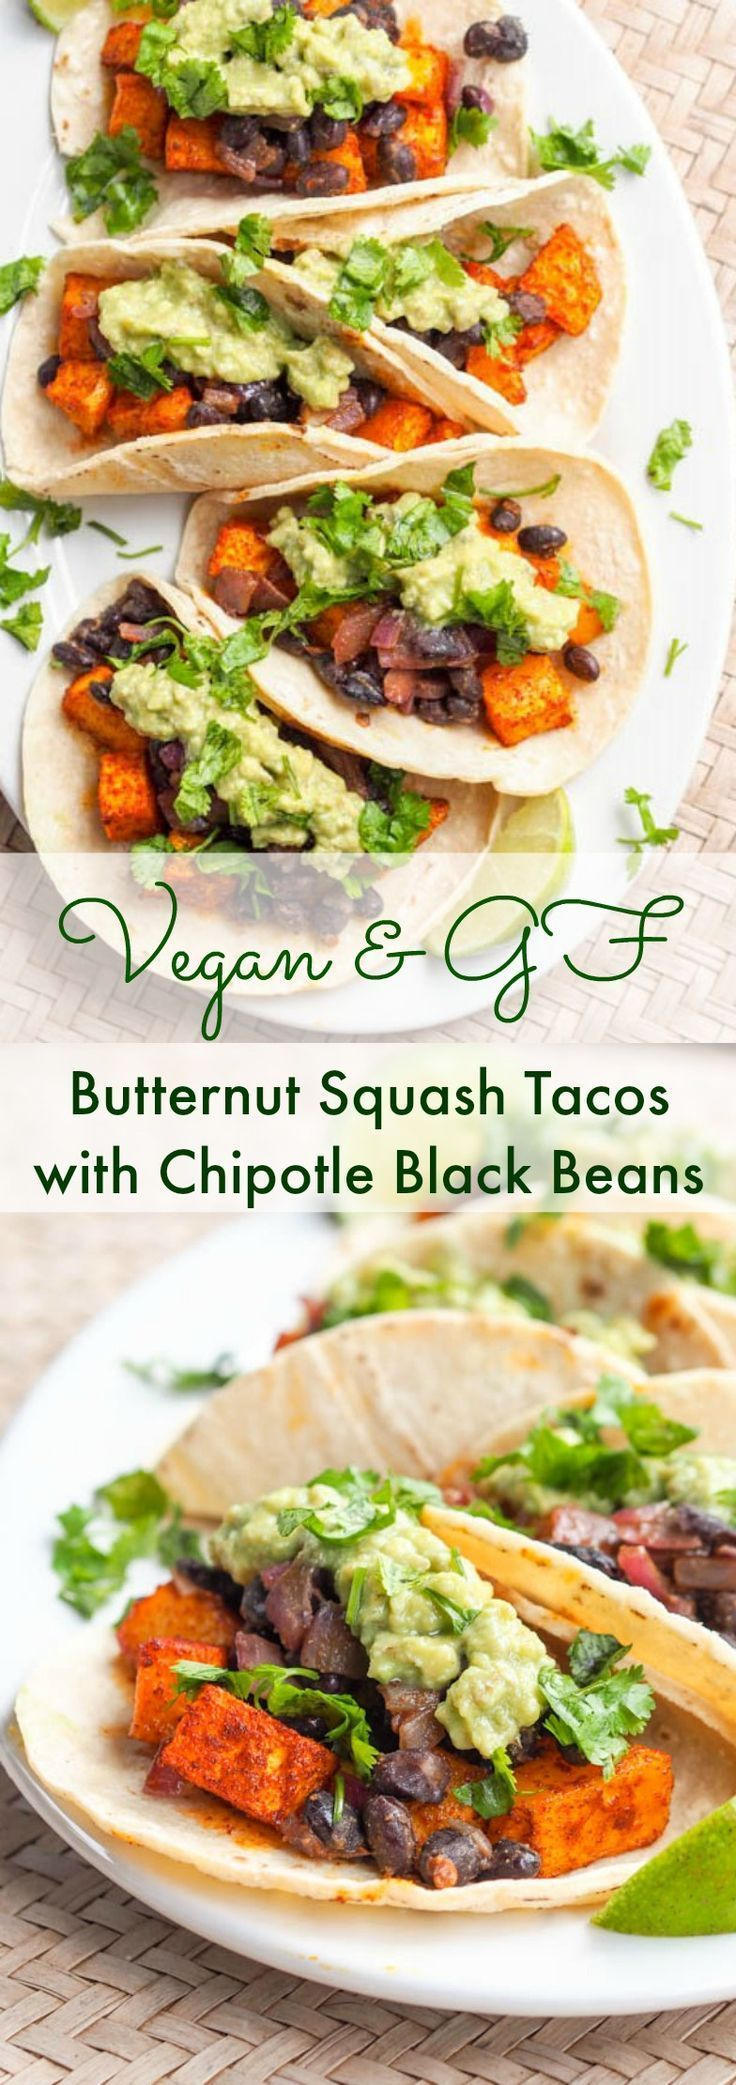 Vegan butternut squash tacos with chipotle black beans are bound to be your new favorite meal. Creamy and smoky roasted squash paired with spicy black beans, crunchy red onions, citrusy lime juice, an